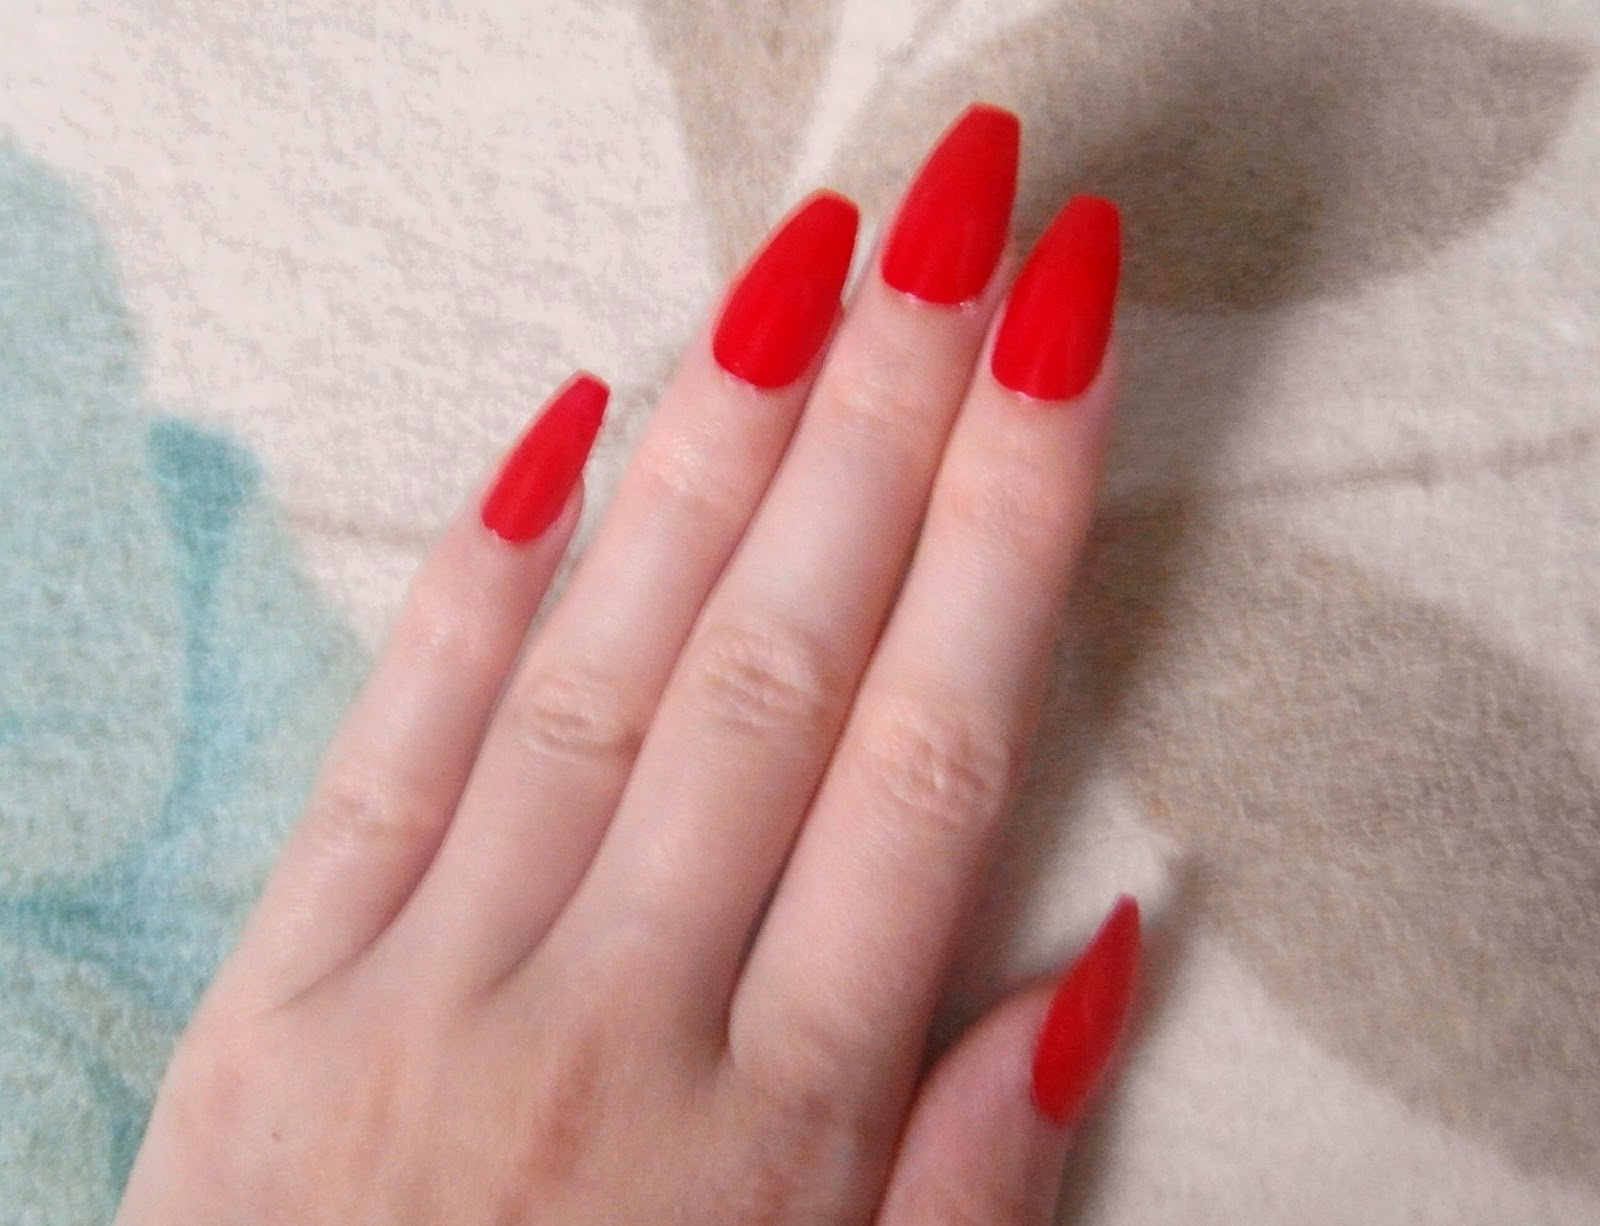 Matte Coffin Shaped Nails Basically Coffin Shaped Nails